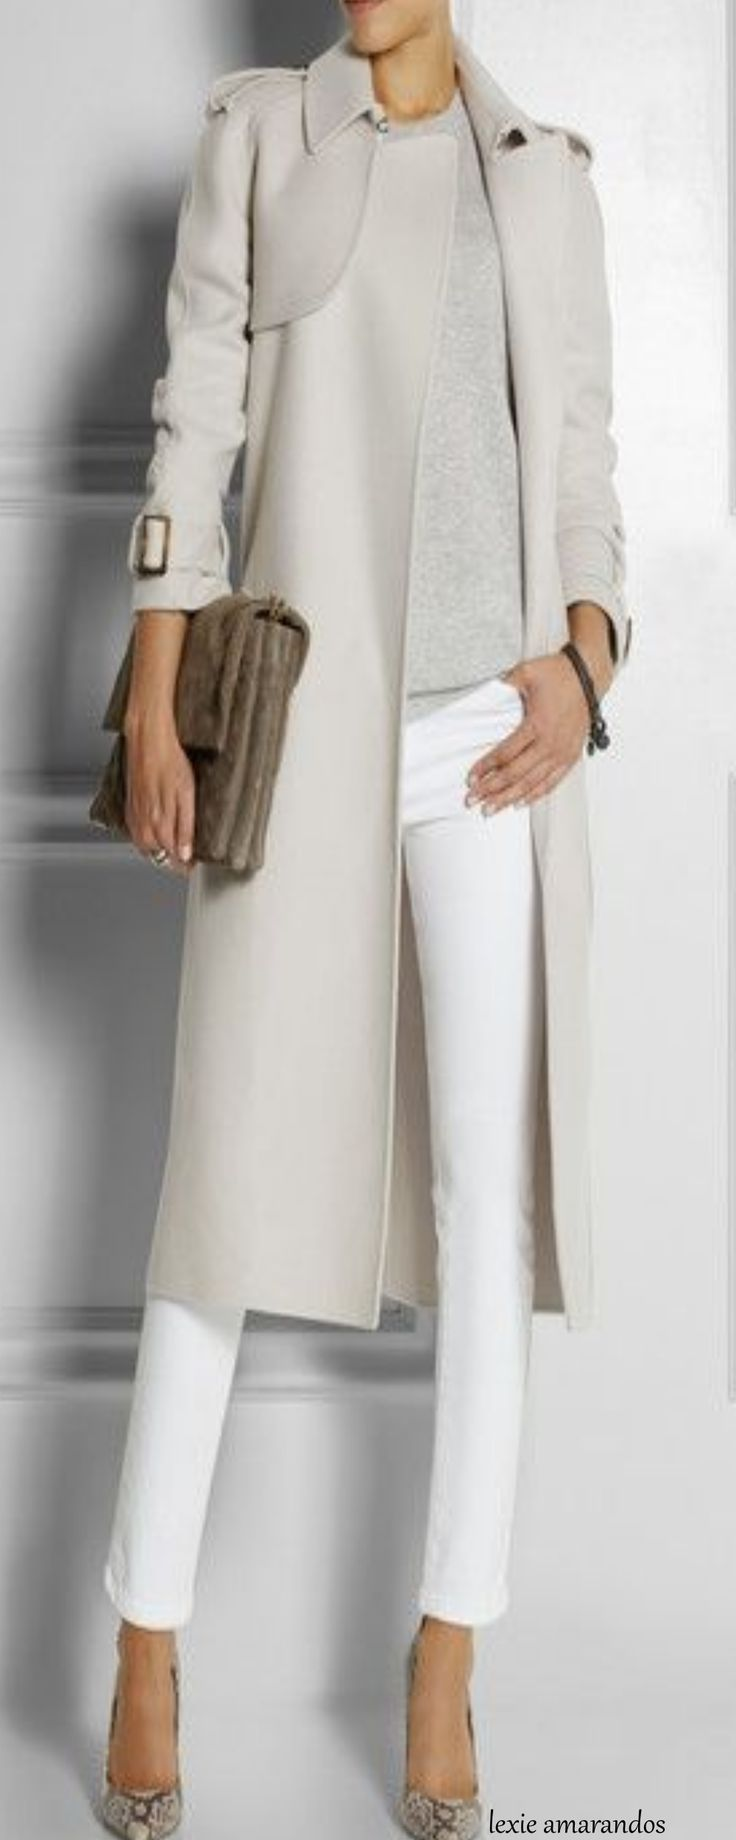 This outfit is so simple and elegant, and I am sorry to ...